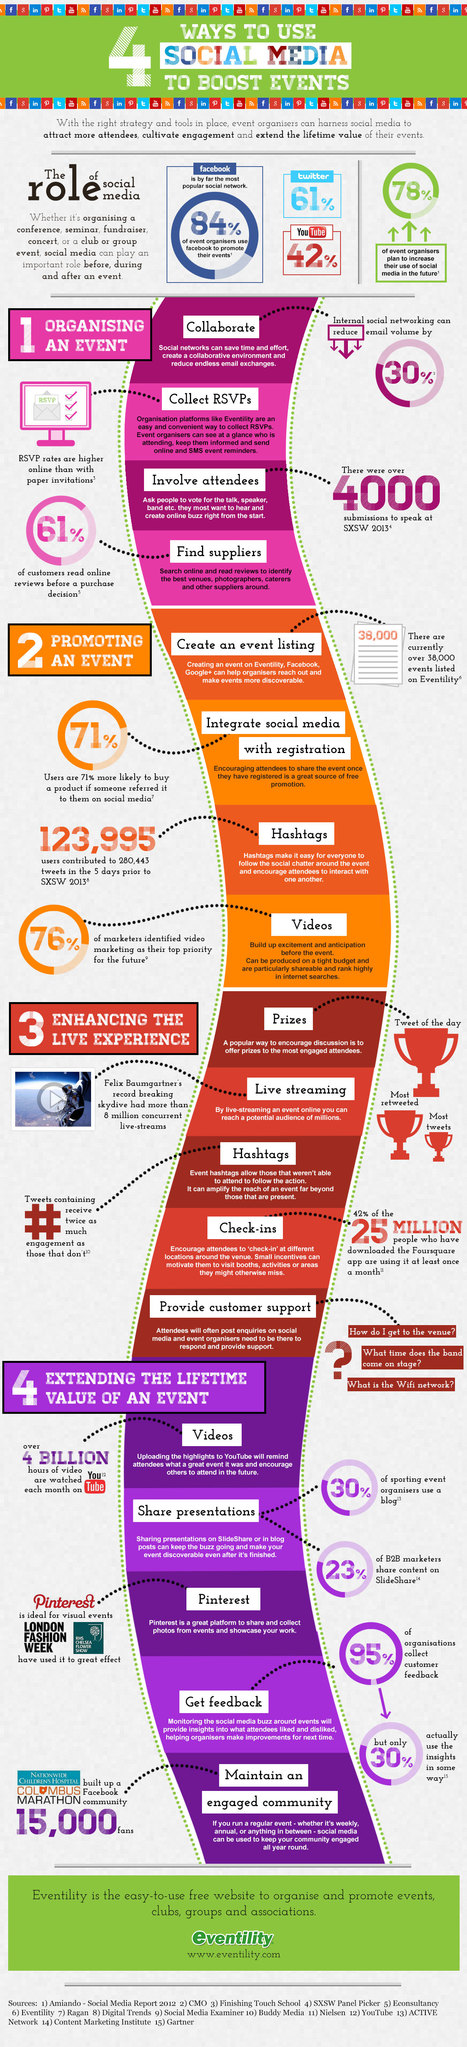 Social media for events [Infographic]   Time to Learn   Scoop.it